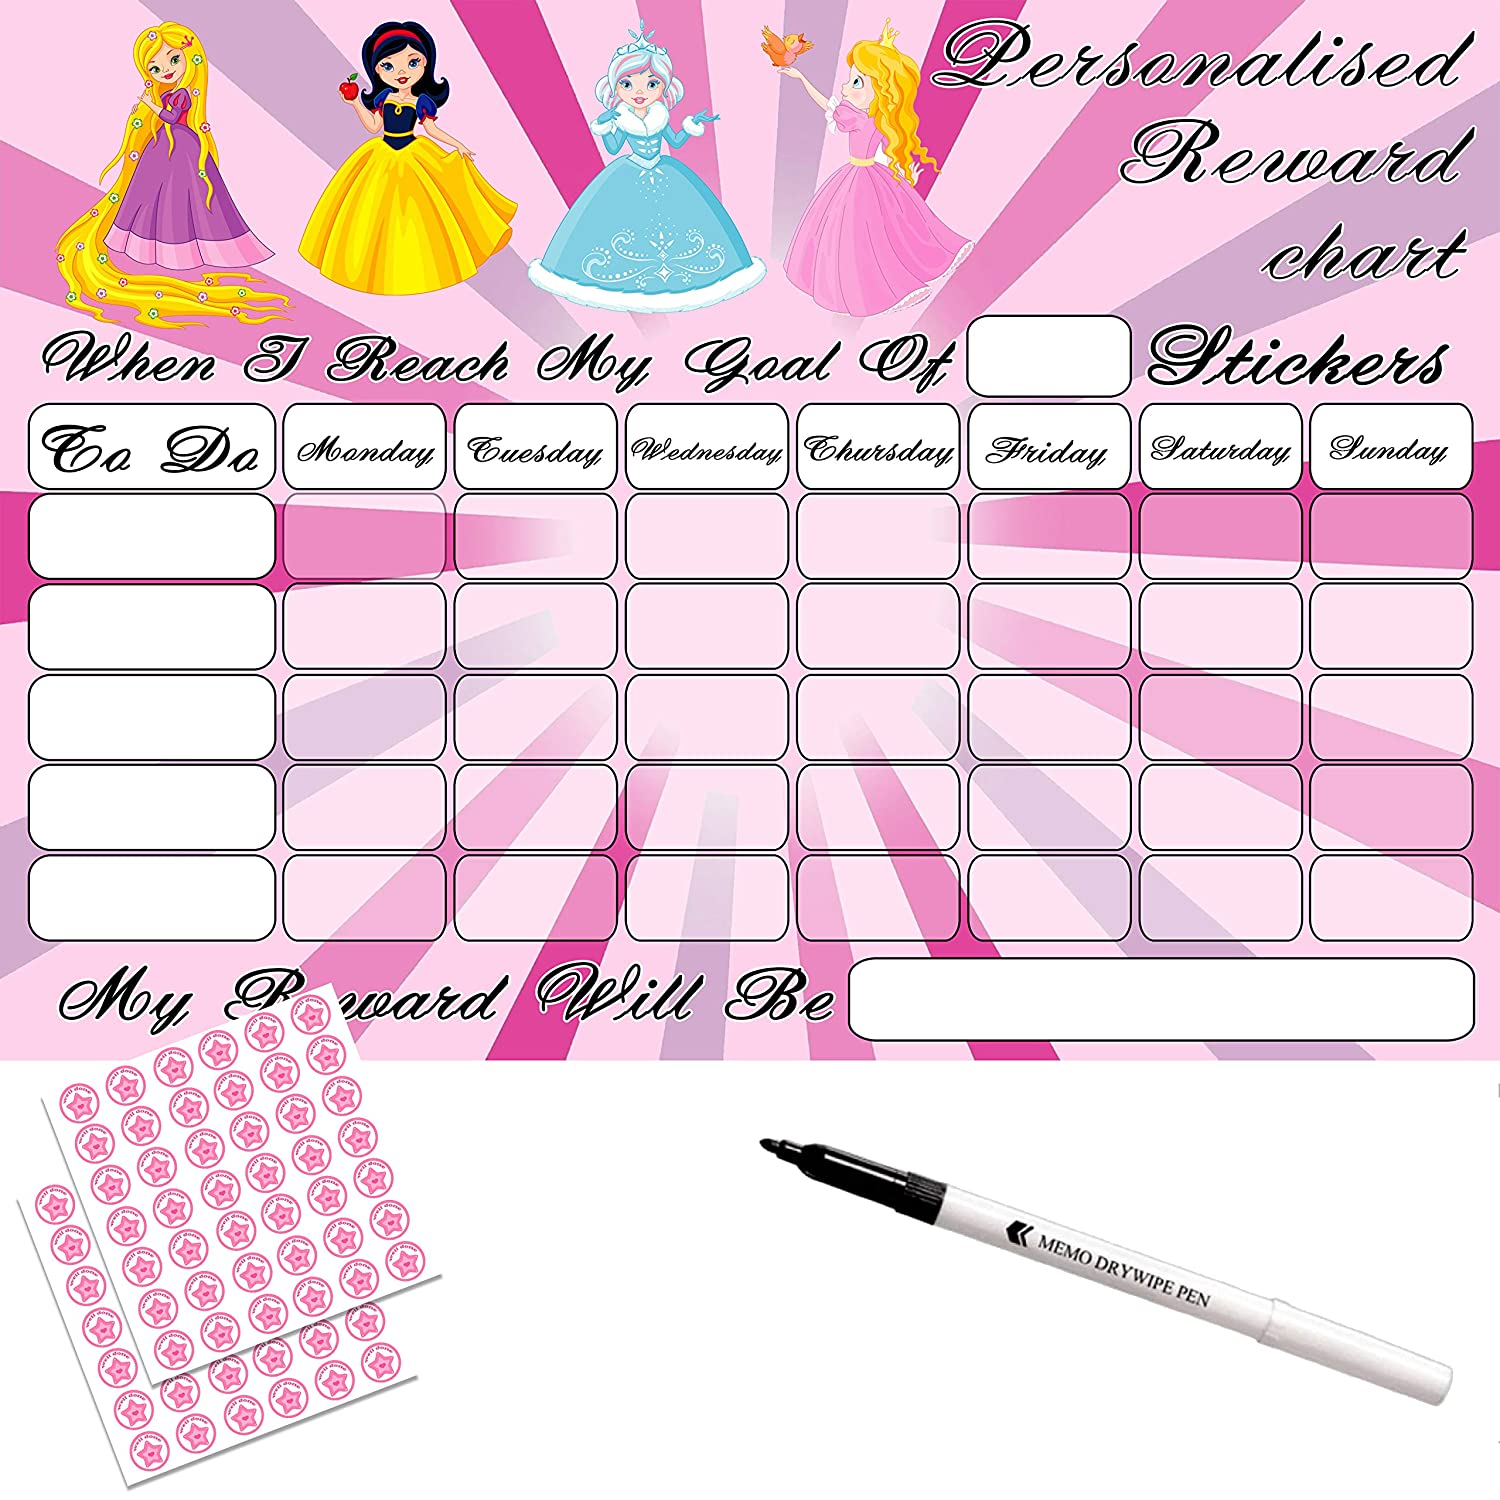 MAGNETIC GIRLS REUSABLE REWARD CHART Unicorn stickers and pen